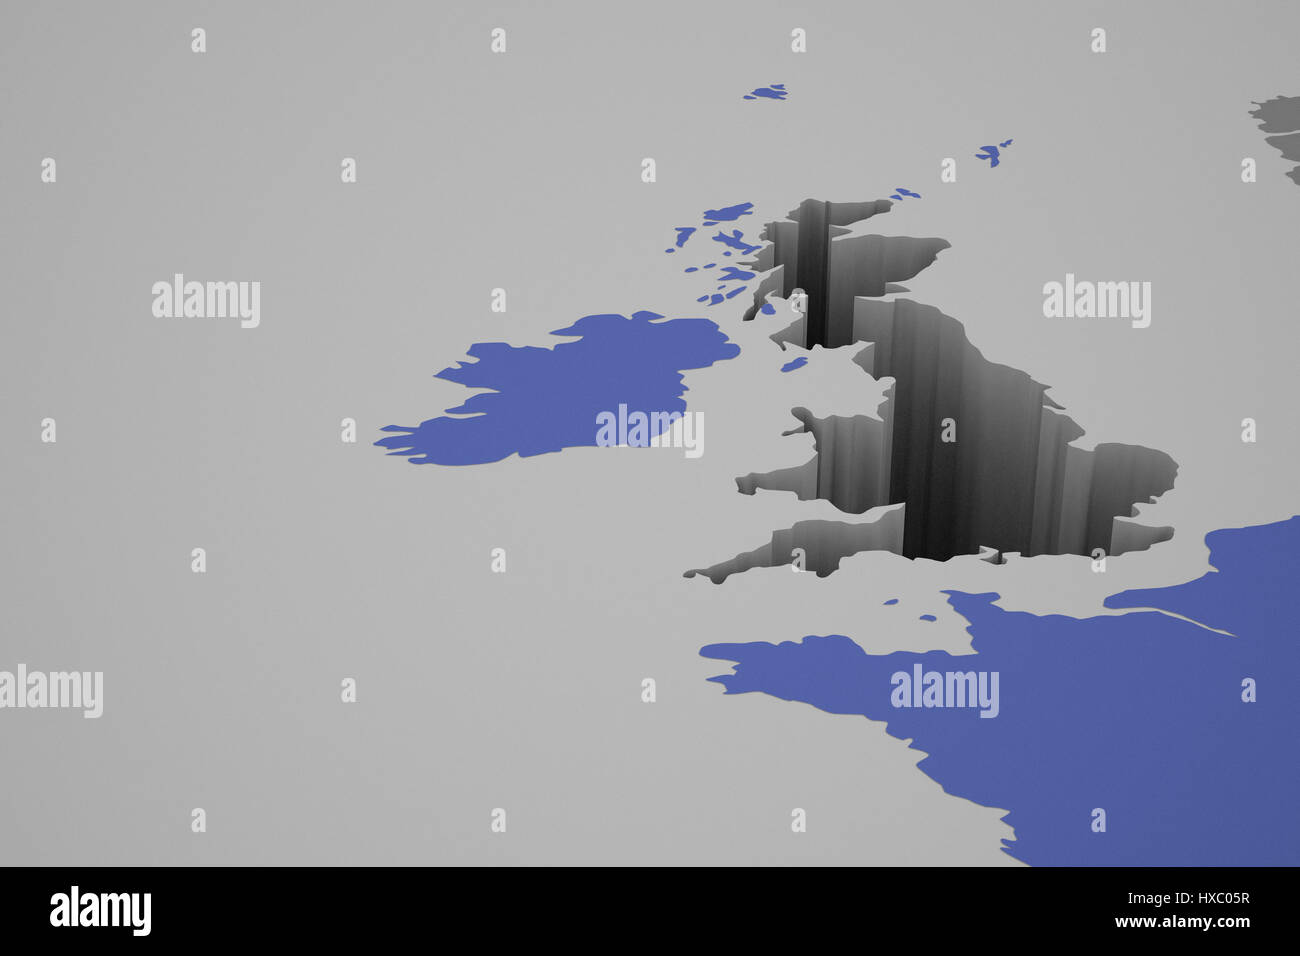 Big Map Of England.3d Illustration Of England Leaving A Big Hole In The Europe Map